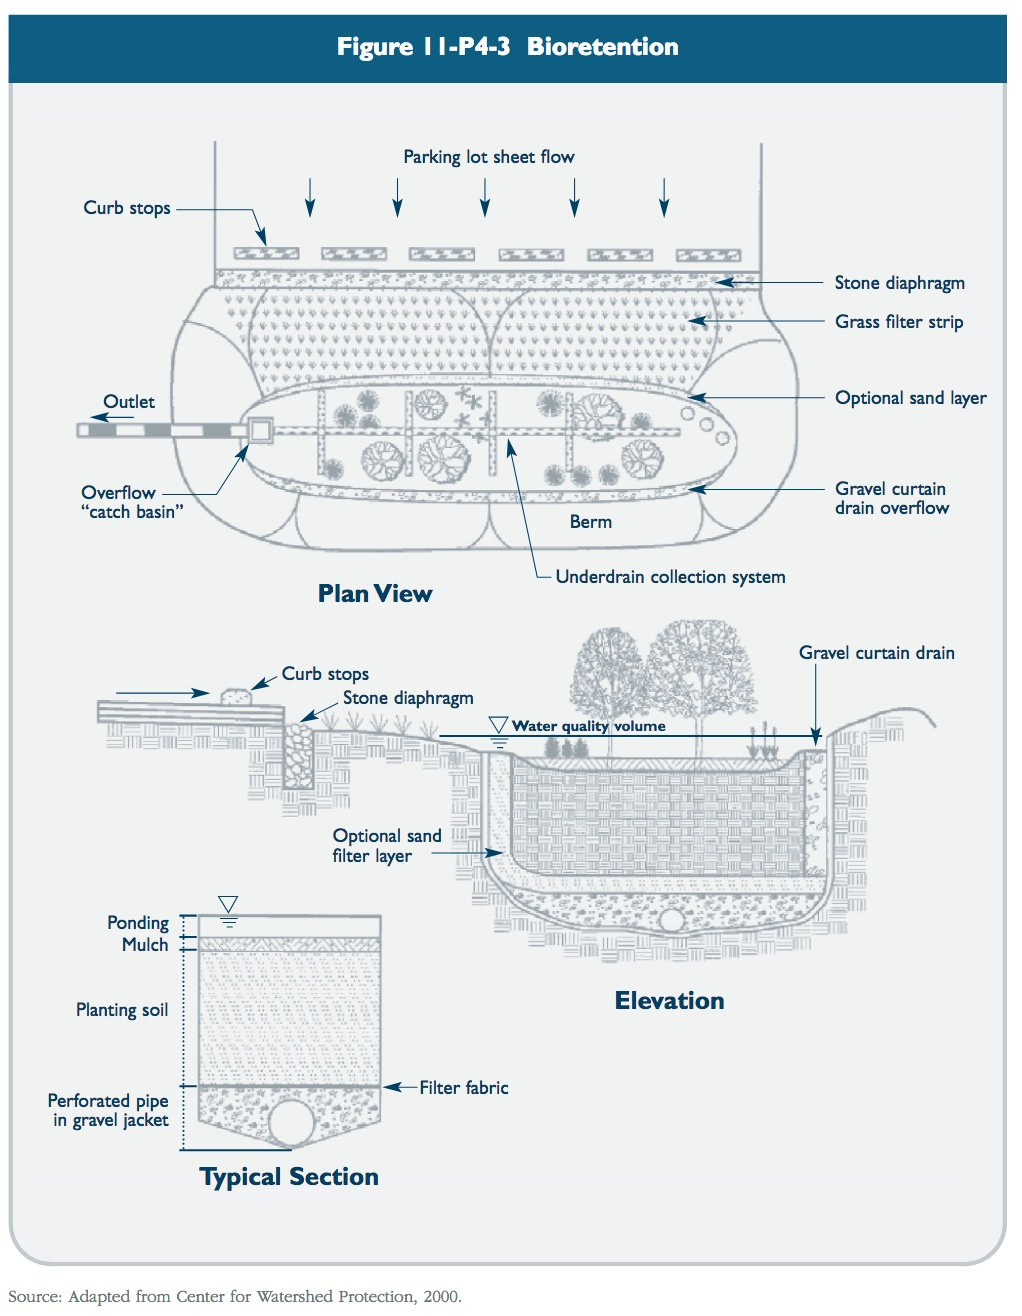 Figure 11-P4-3 Bioretention schematic